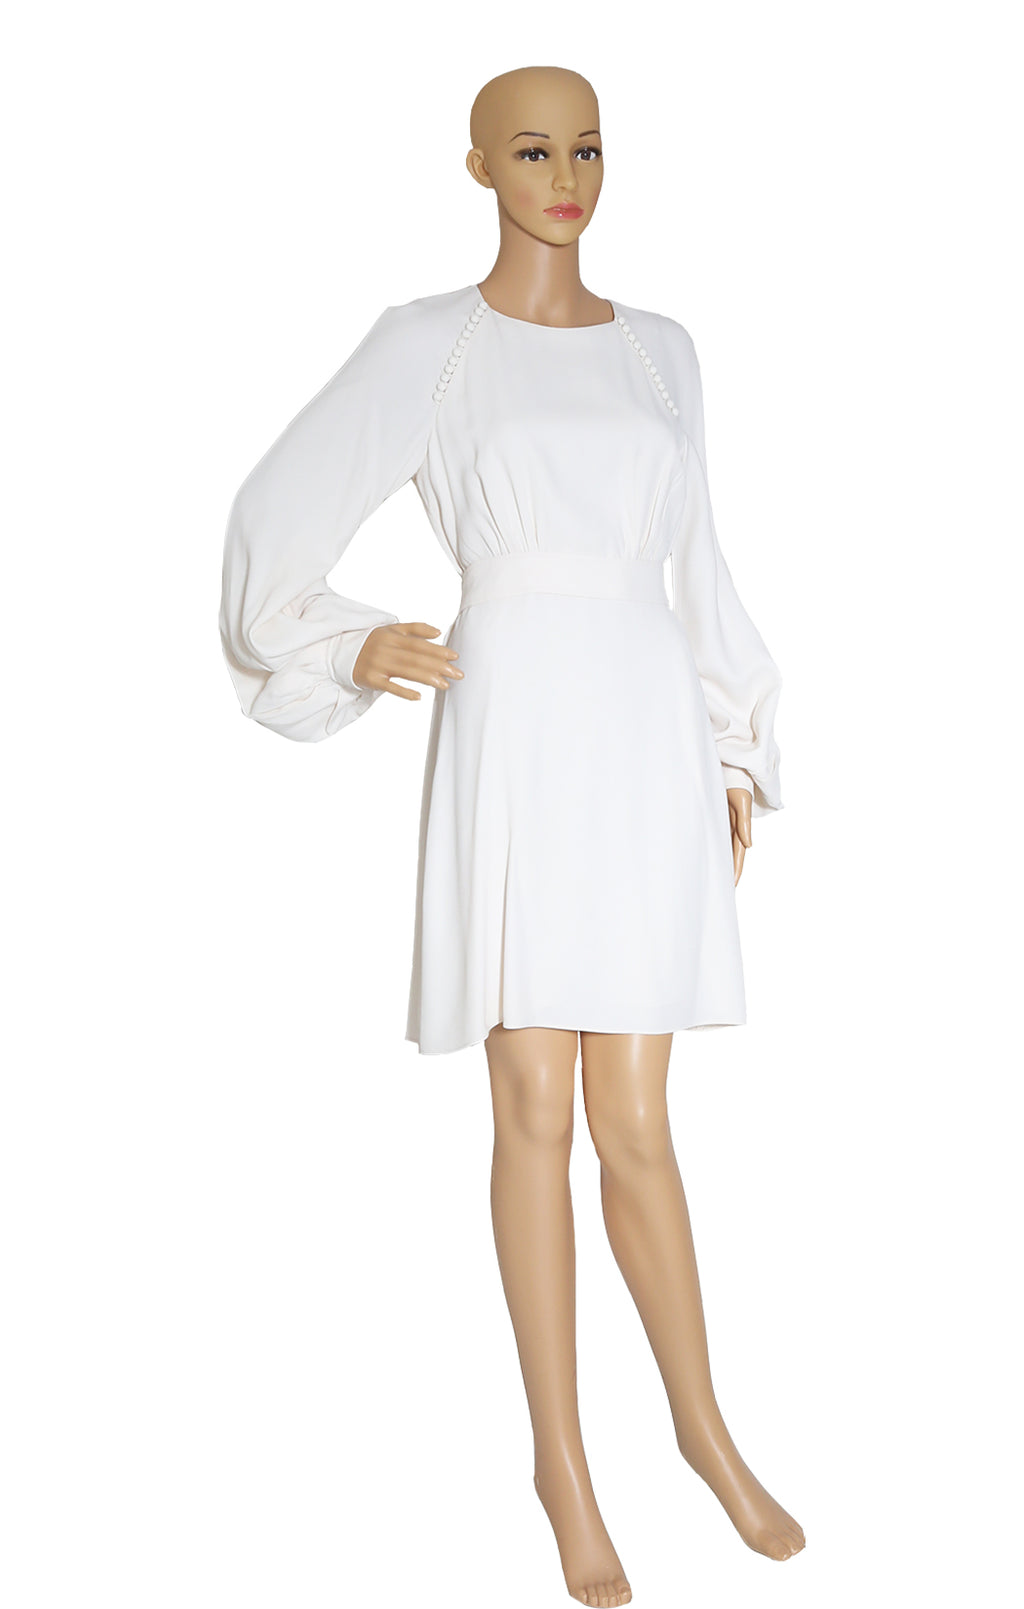 Front view of CHLOE  Ivory Dress Size: FR 36 (US 4)